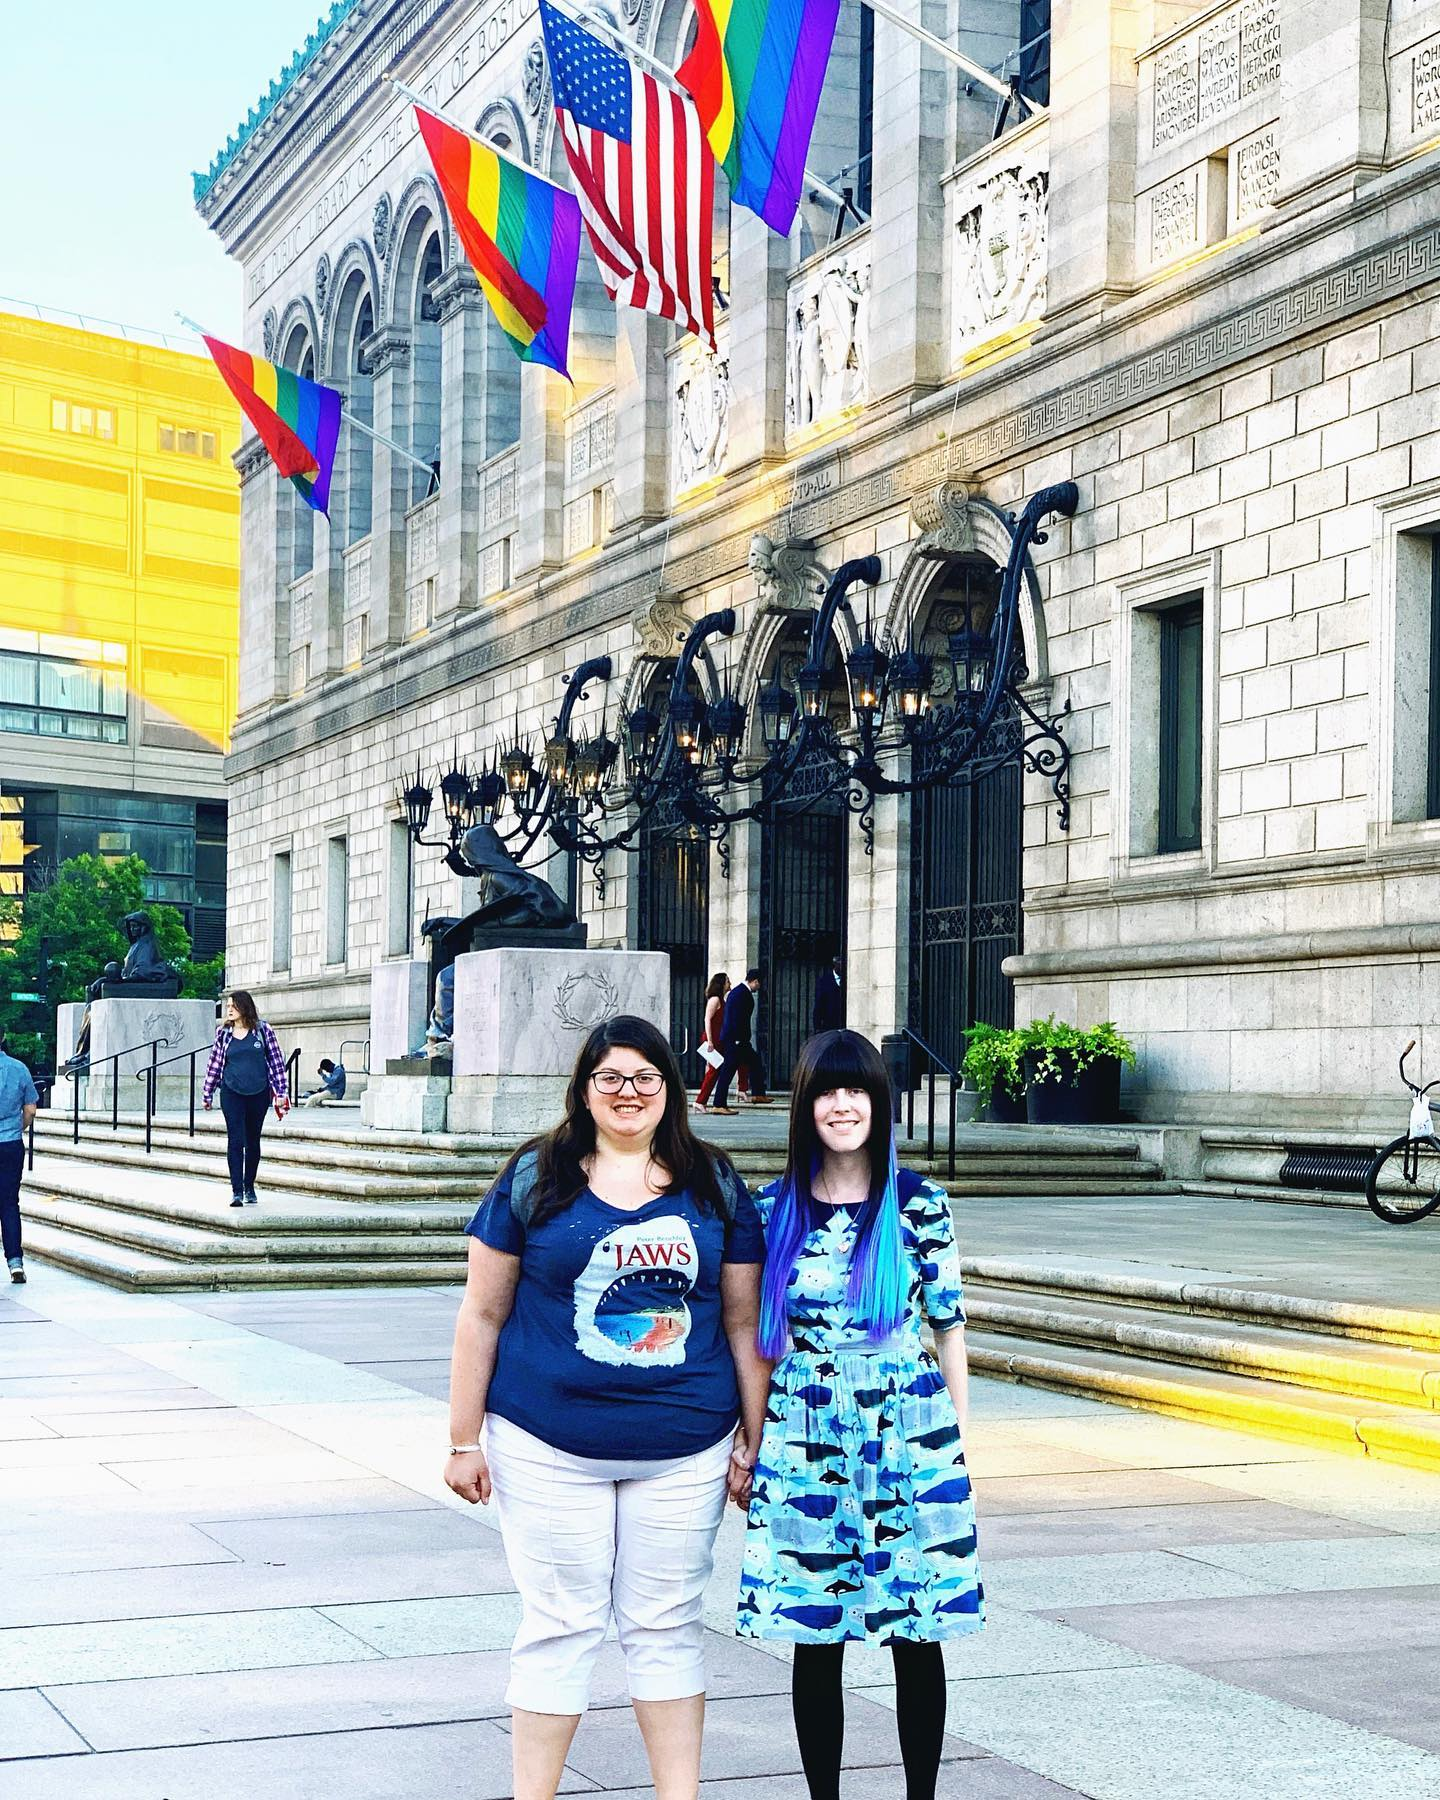 Author and her fiancee in front of building with pride flags